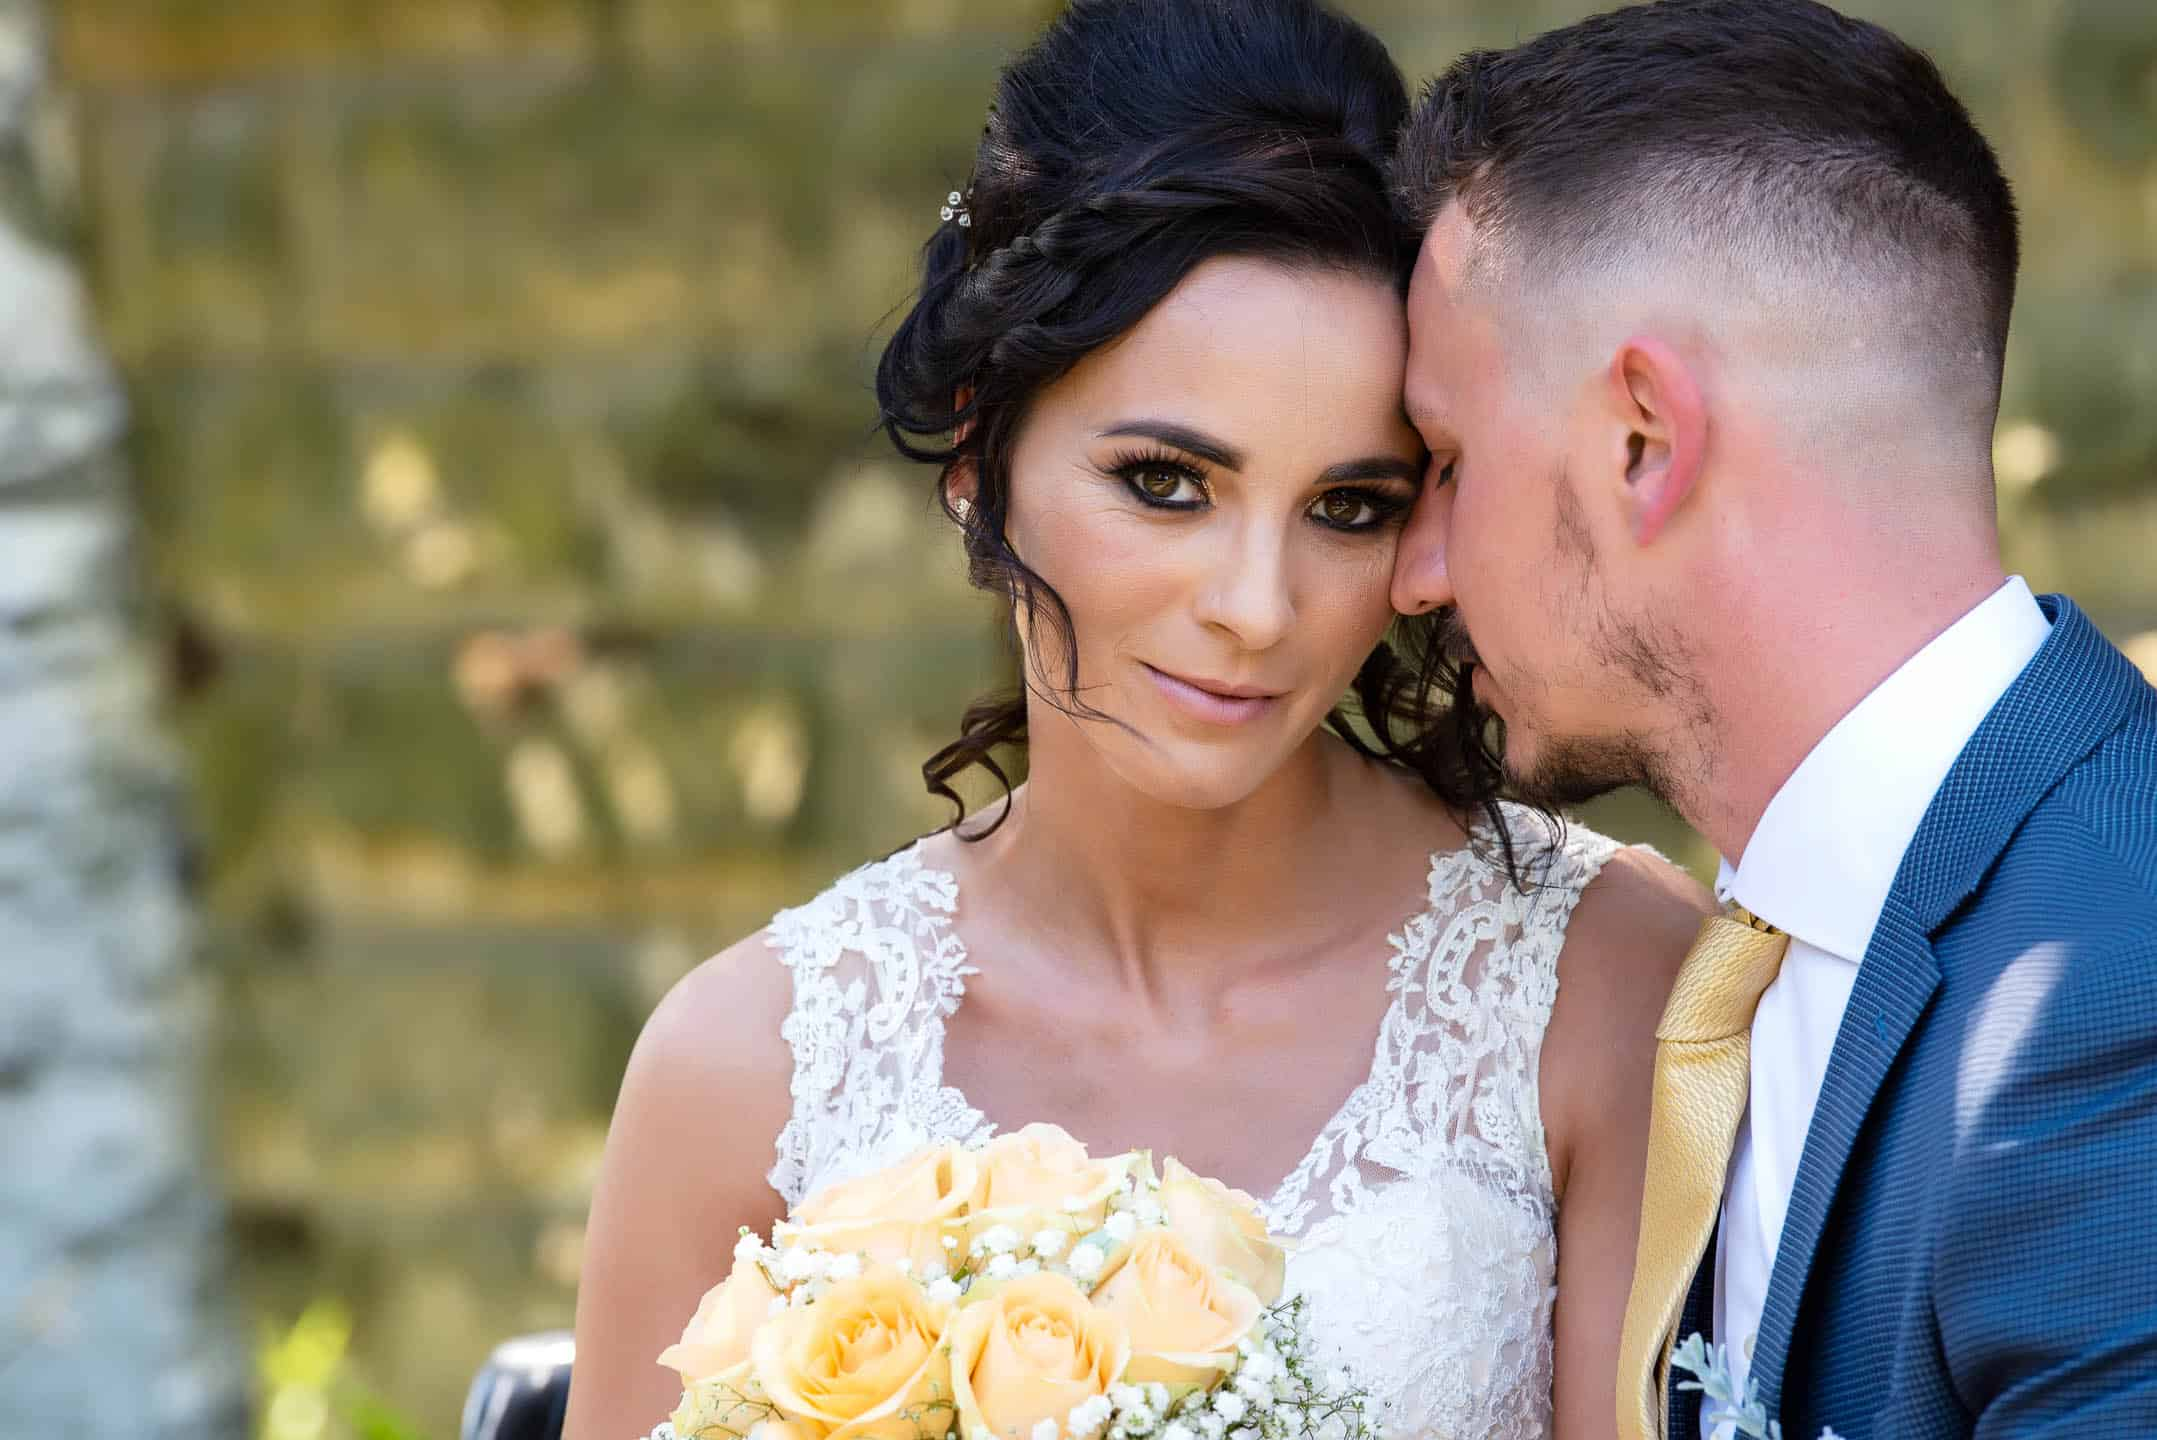 Manchester Wedding Photography by Alin Turcanu photographer wedding in Castleford intimate moment